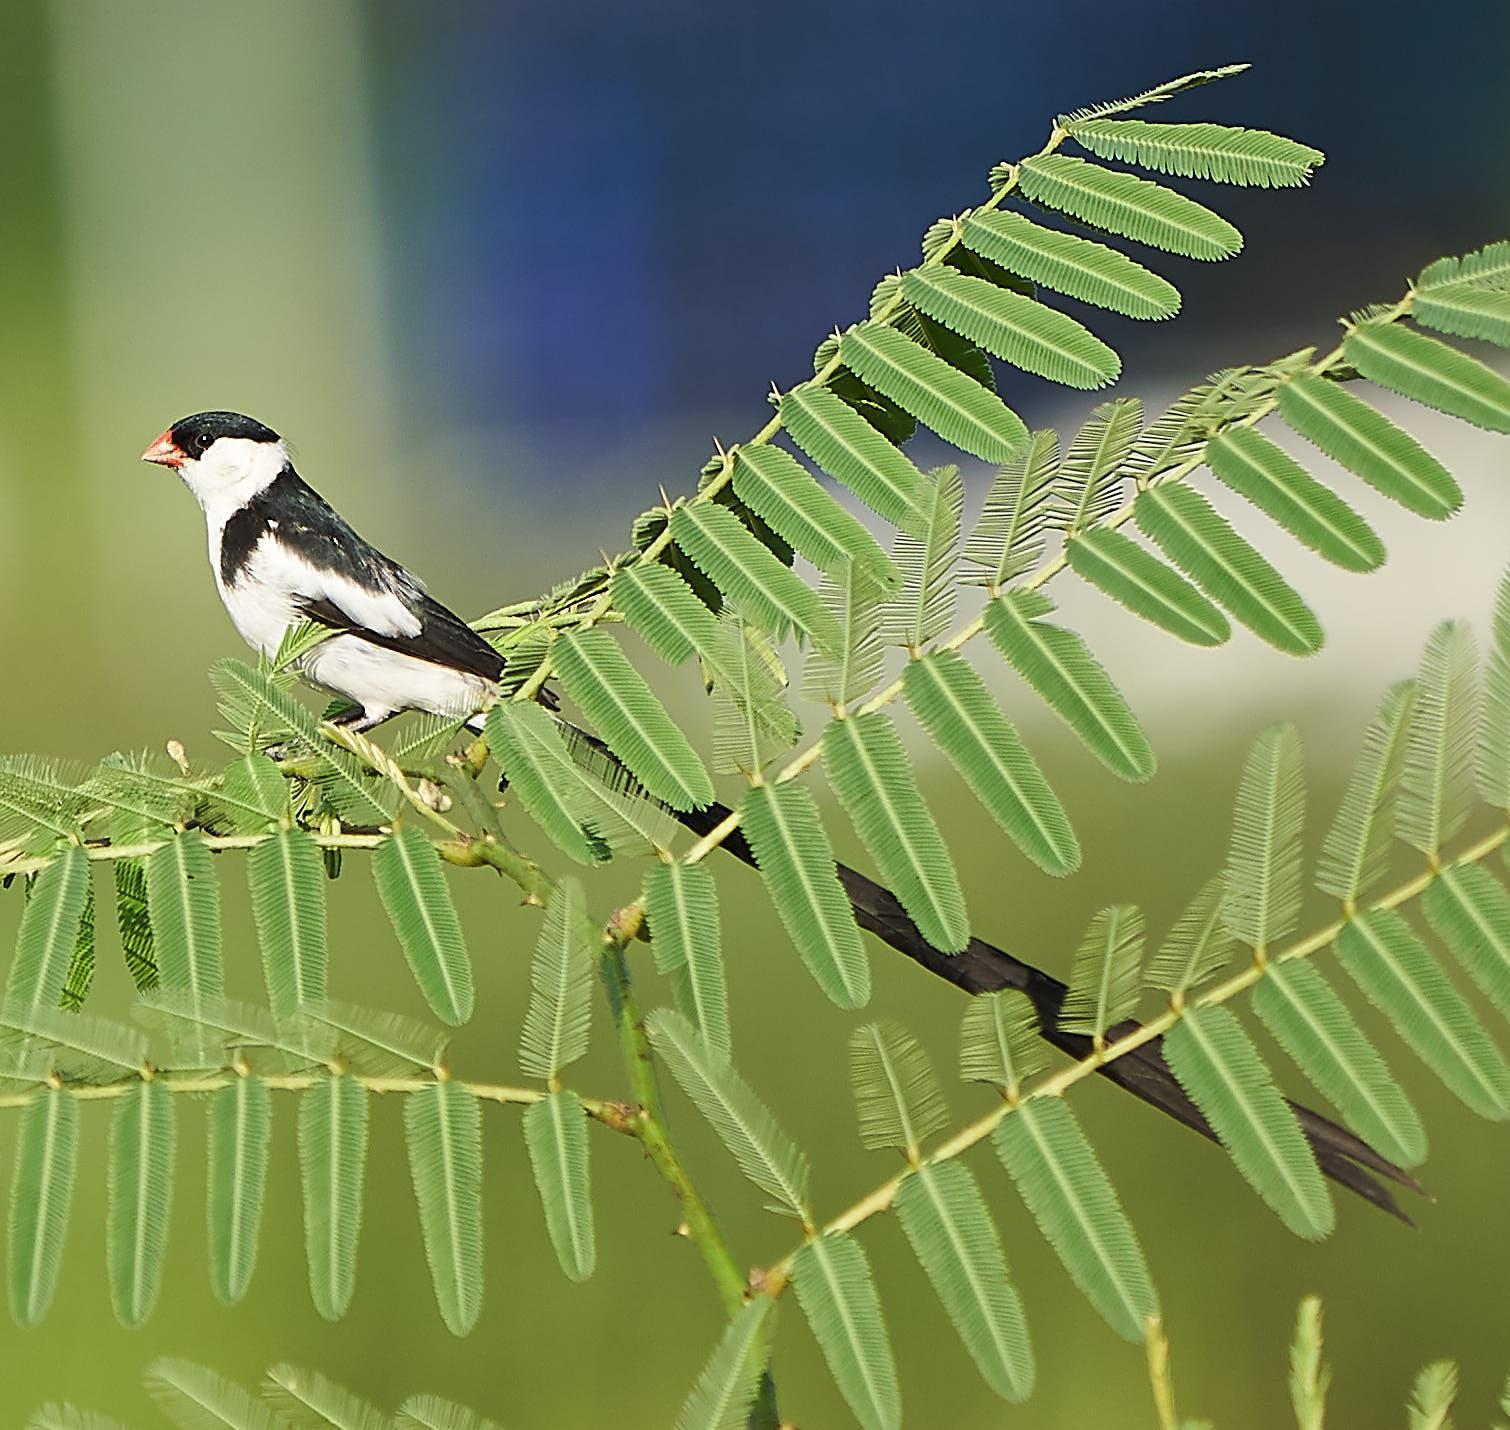 Pin-tailed Whydah Photo by Steven Cheong